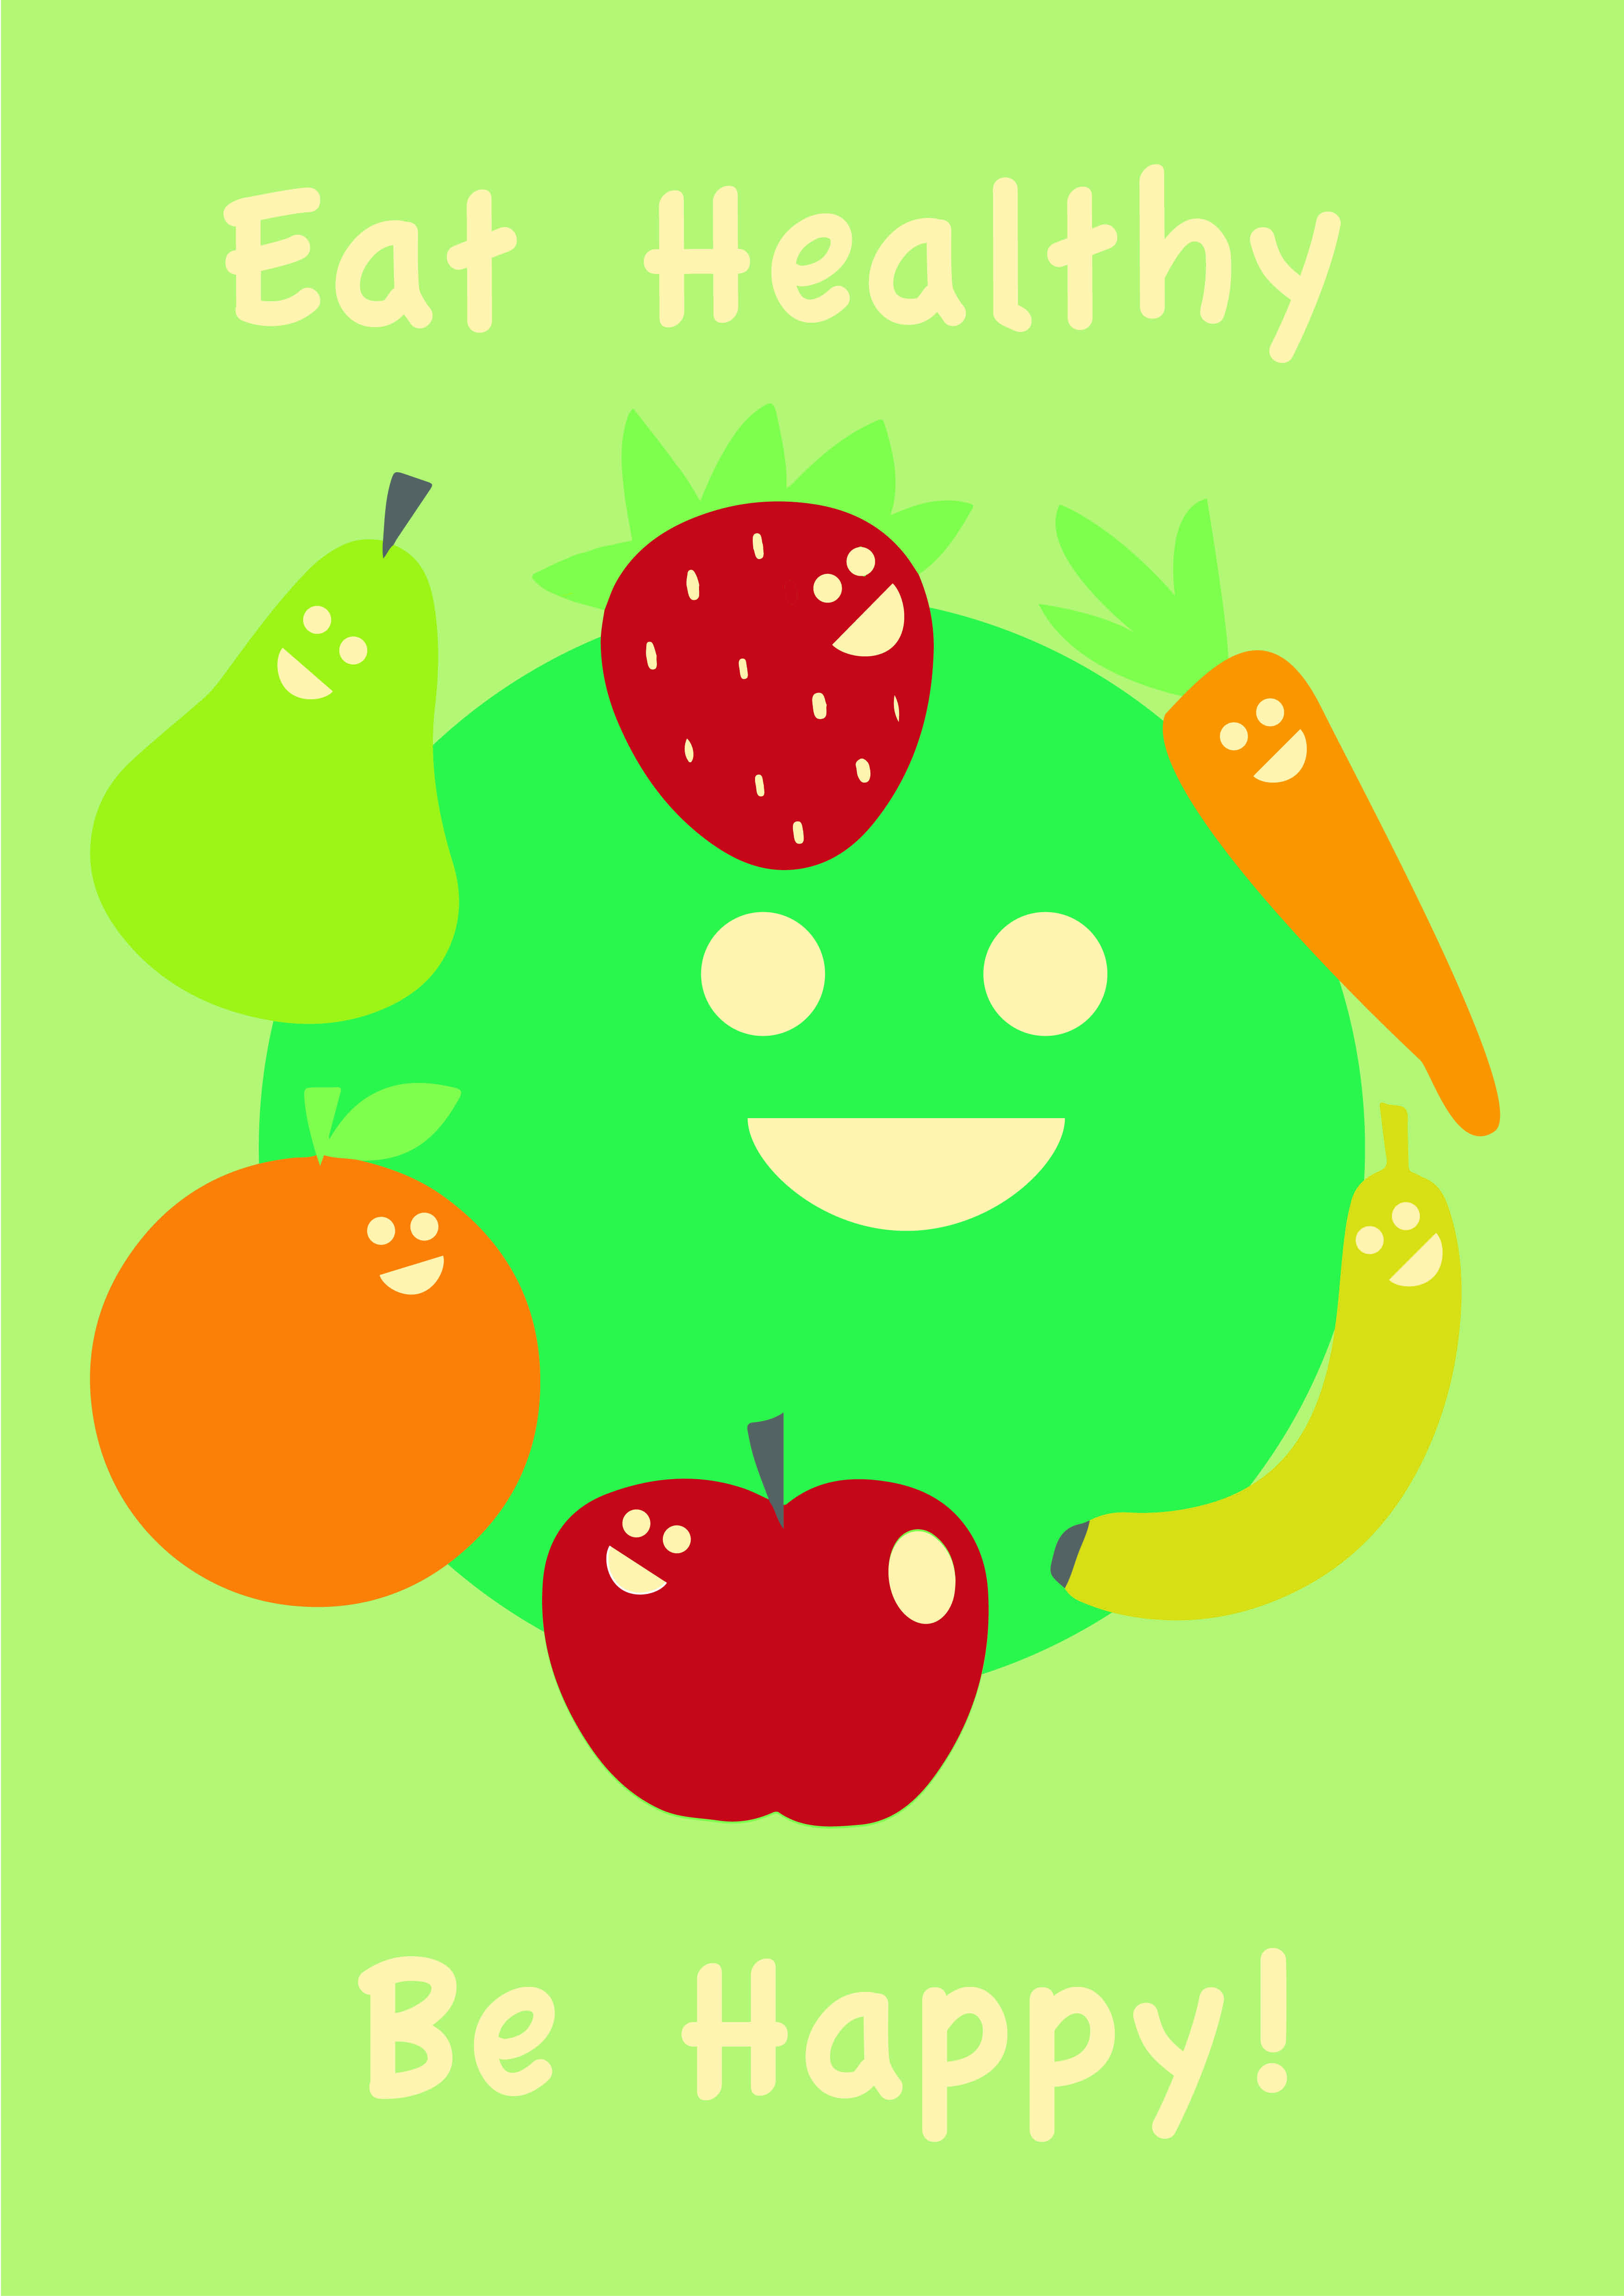 Simple Healthy Eating Poster for Primary School | Healthy Eating